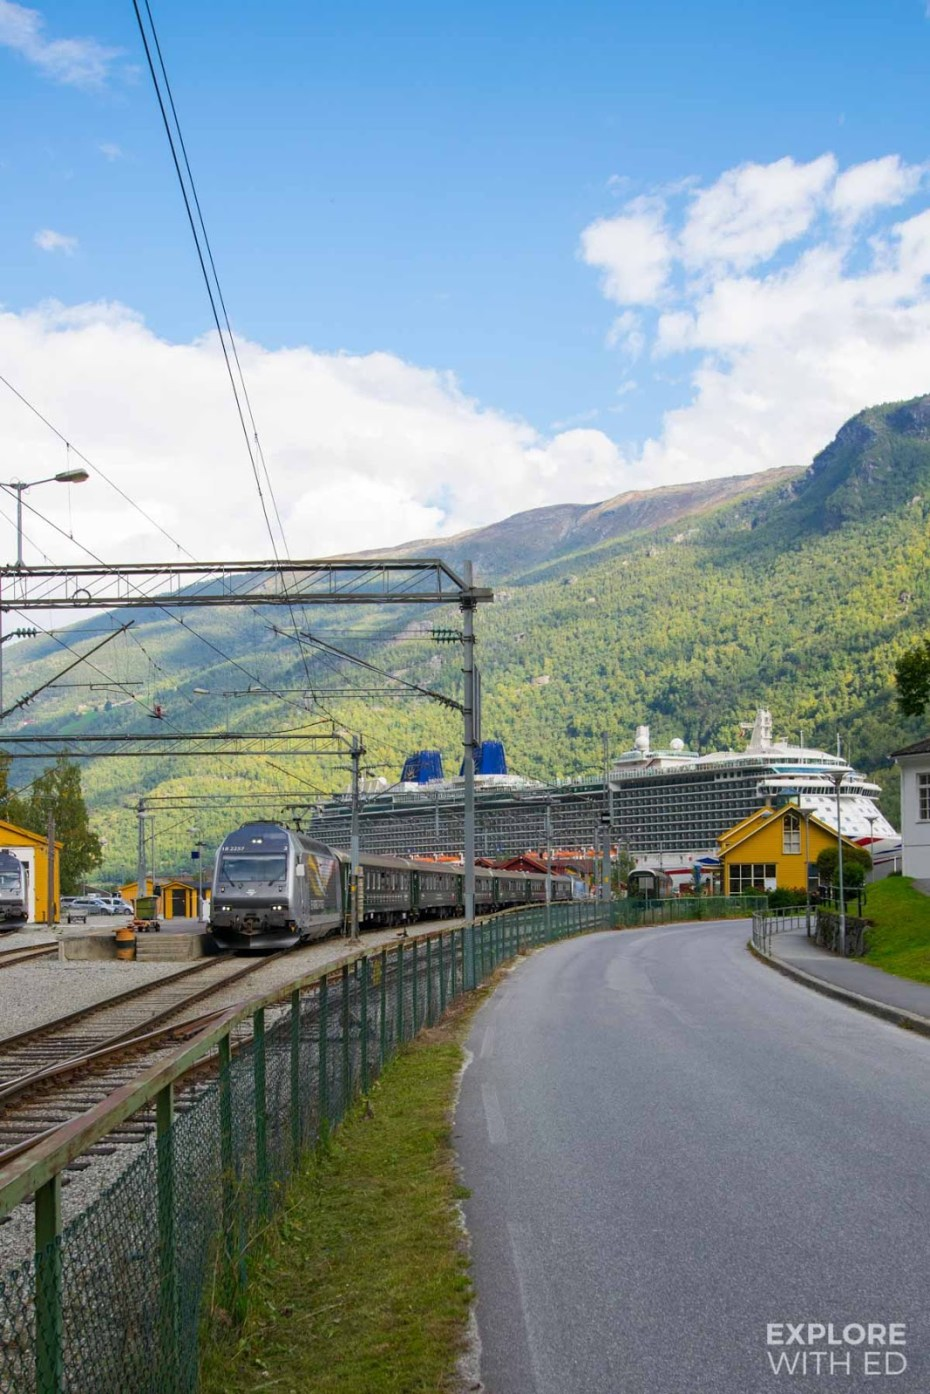 The Flam railway station showing proximity to cruise ship